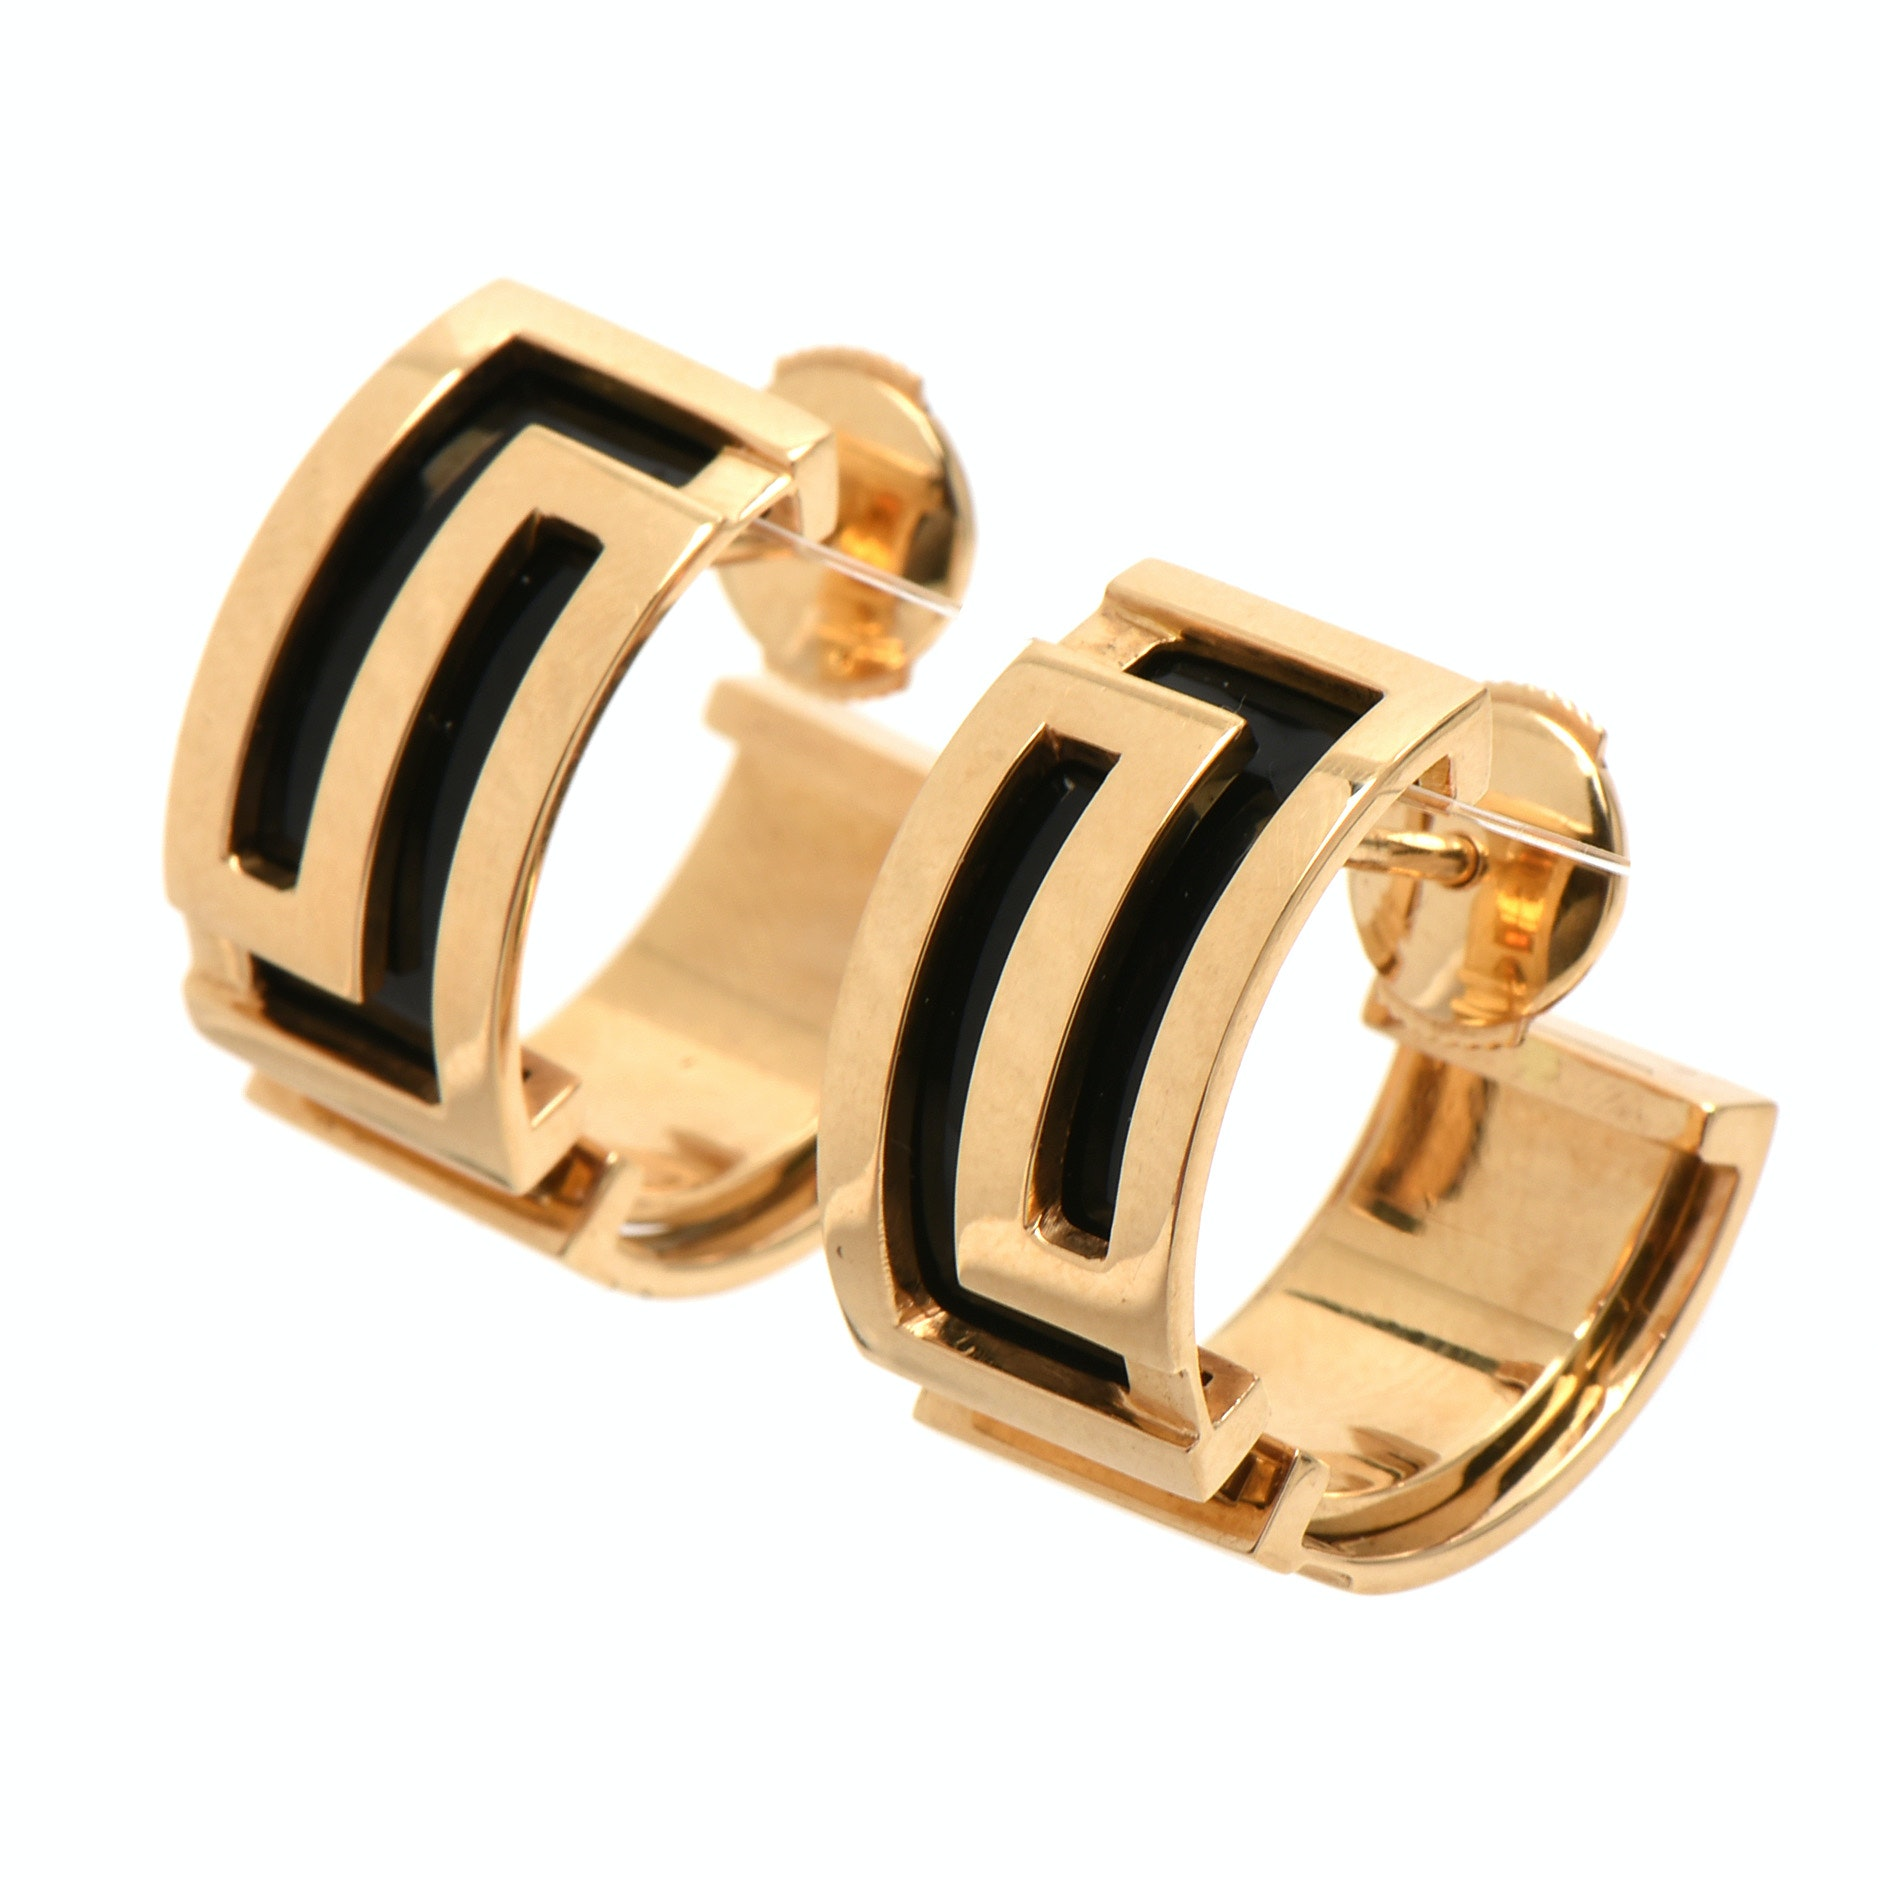 Versace 18K Yellow Gold Black Enamel Greek Key Half-Hoop Earrings